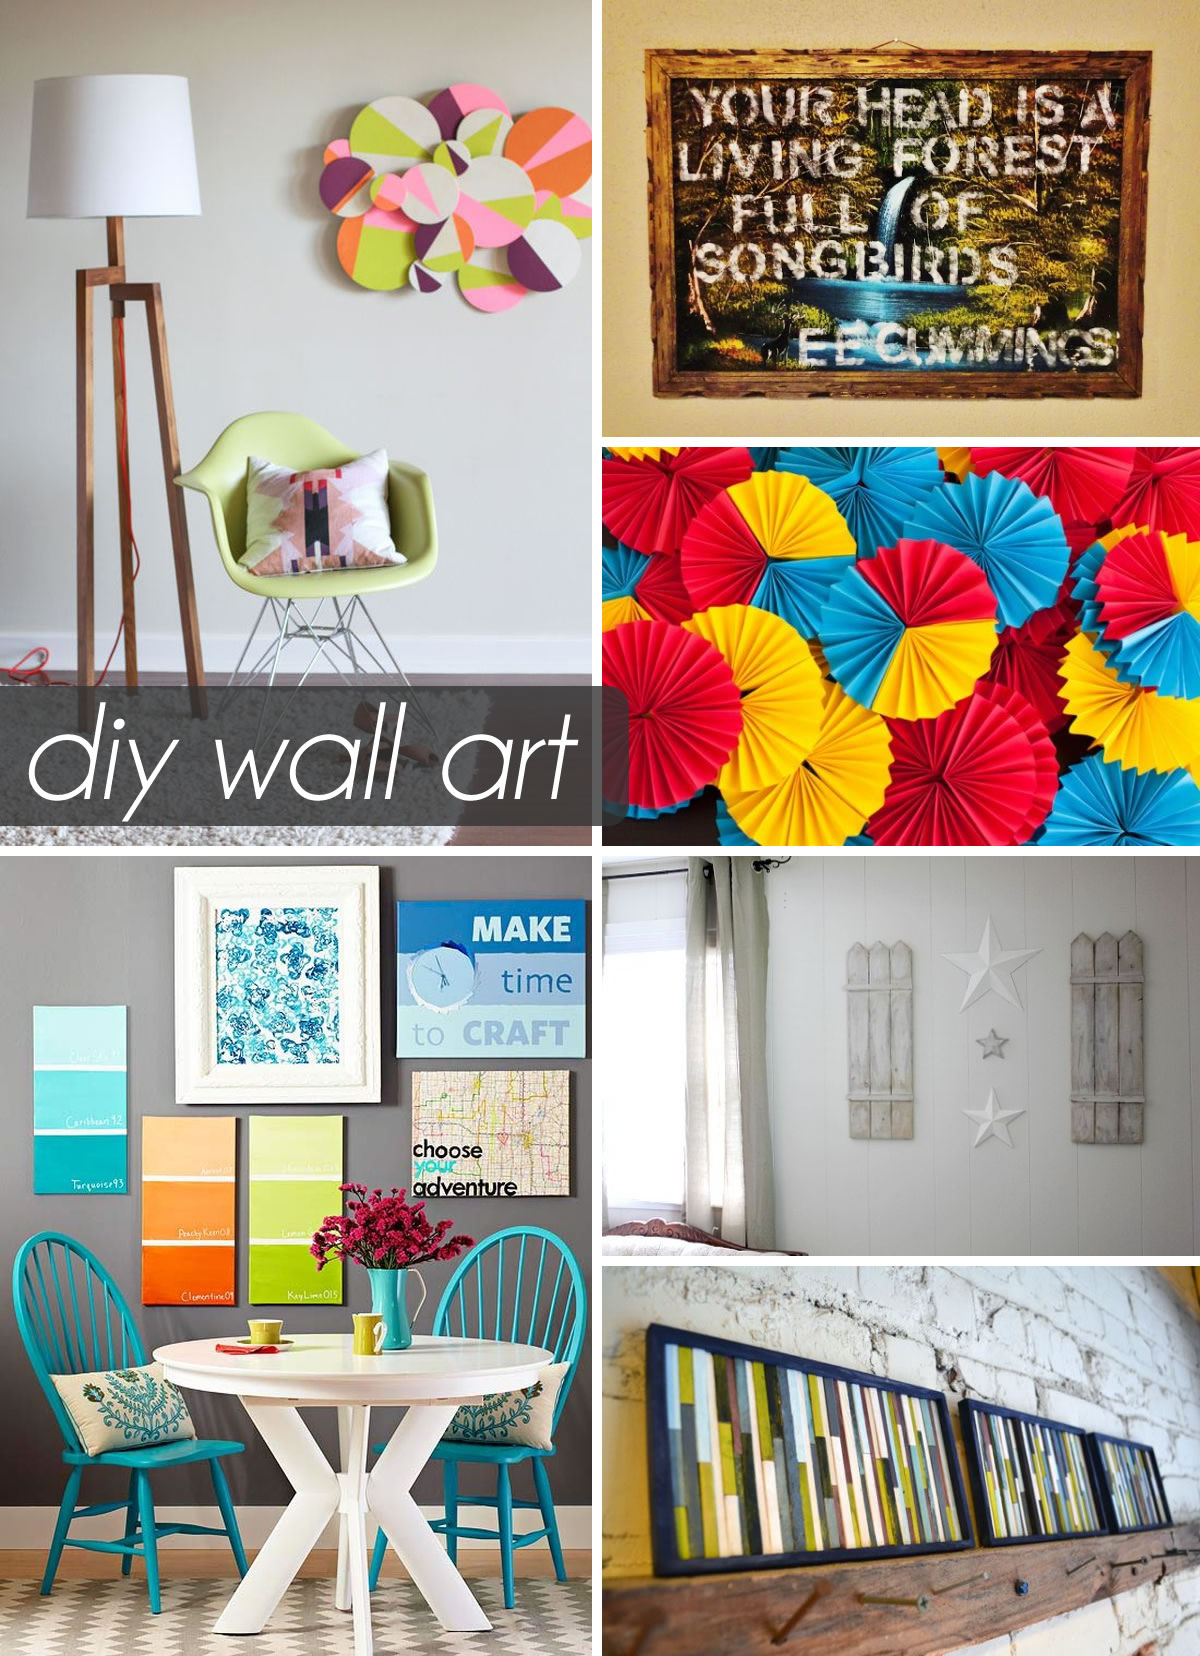 50 beautiful diy wall art ideas for your home - Diy Wall Decor Ideas For Bedroom